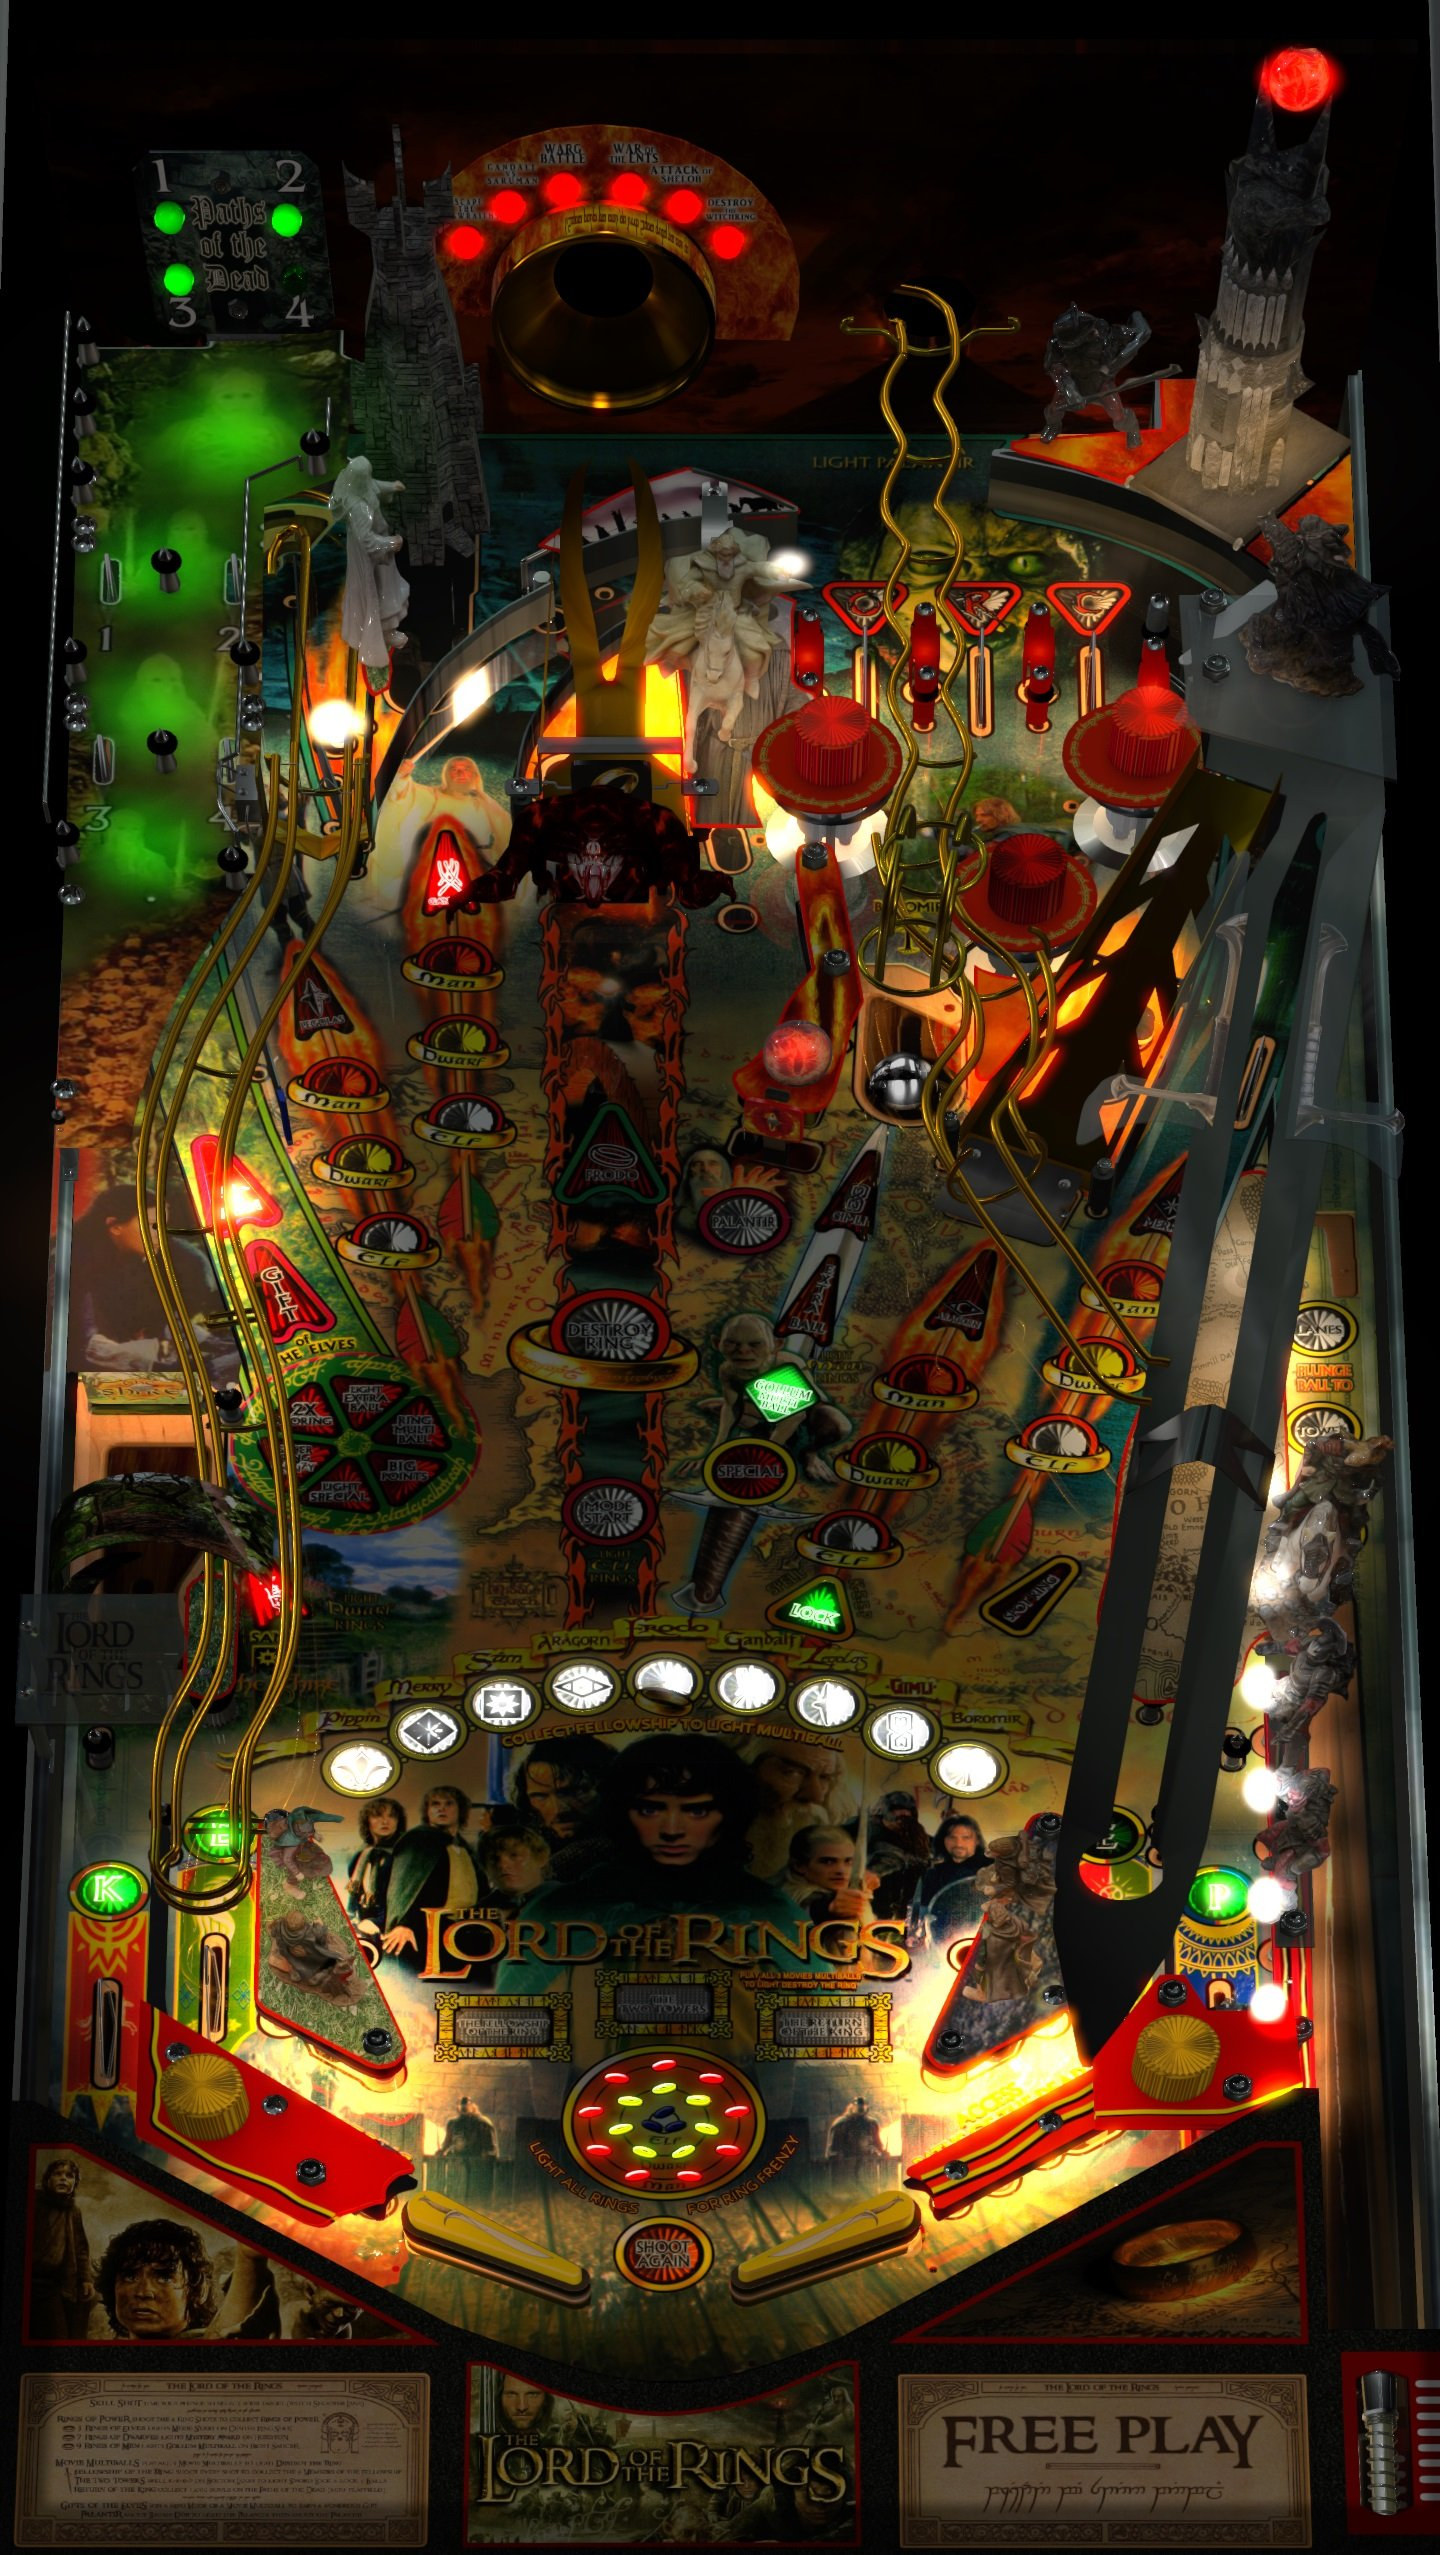 [SUPPORT] The Lord of the Rings Playfield-rotated.jpg.3617b3a6188bef5df476d4c836c9434d